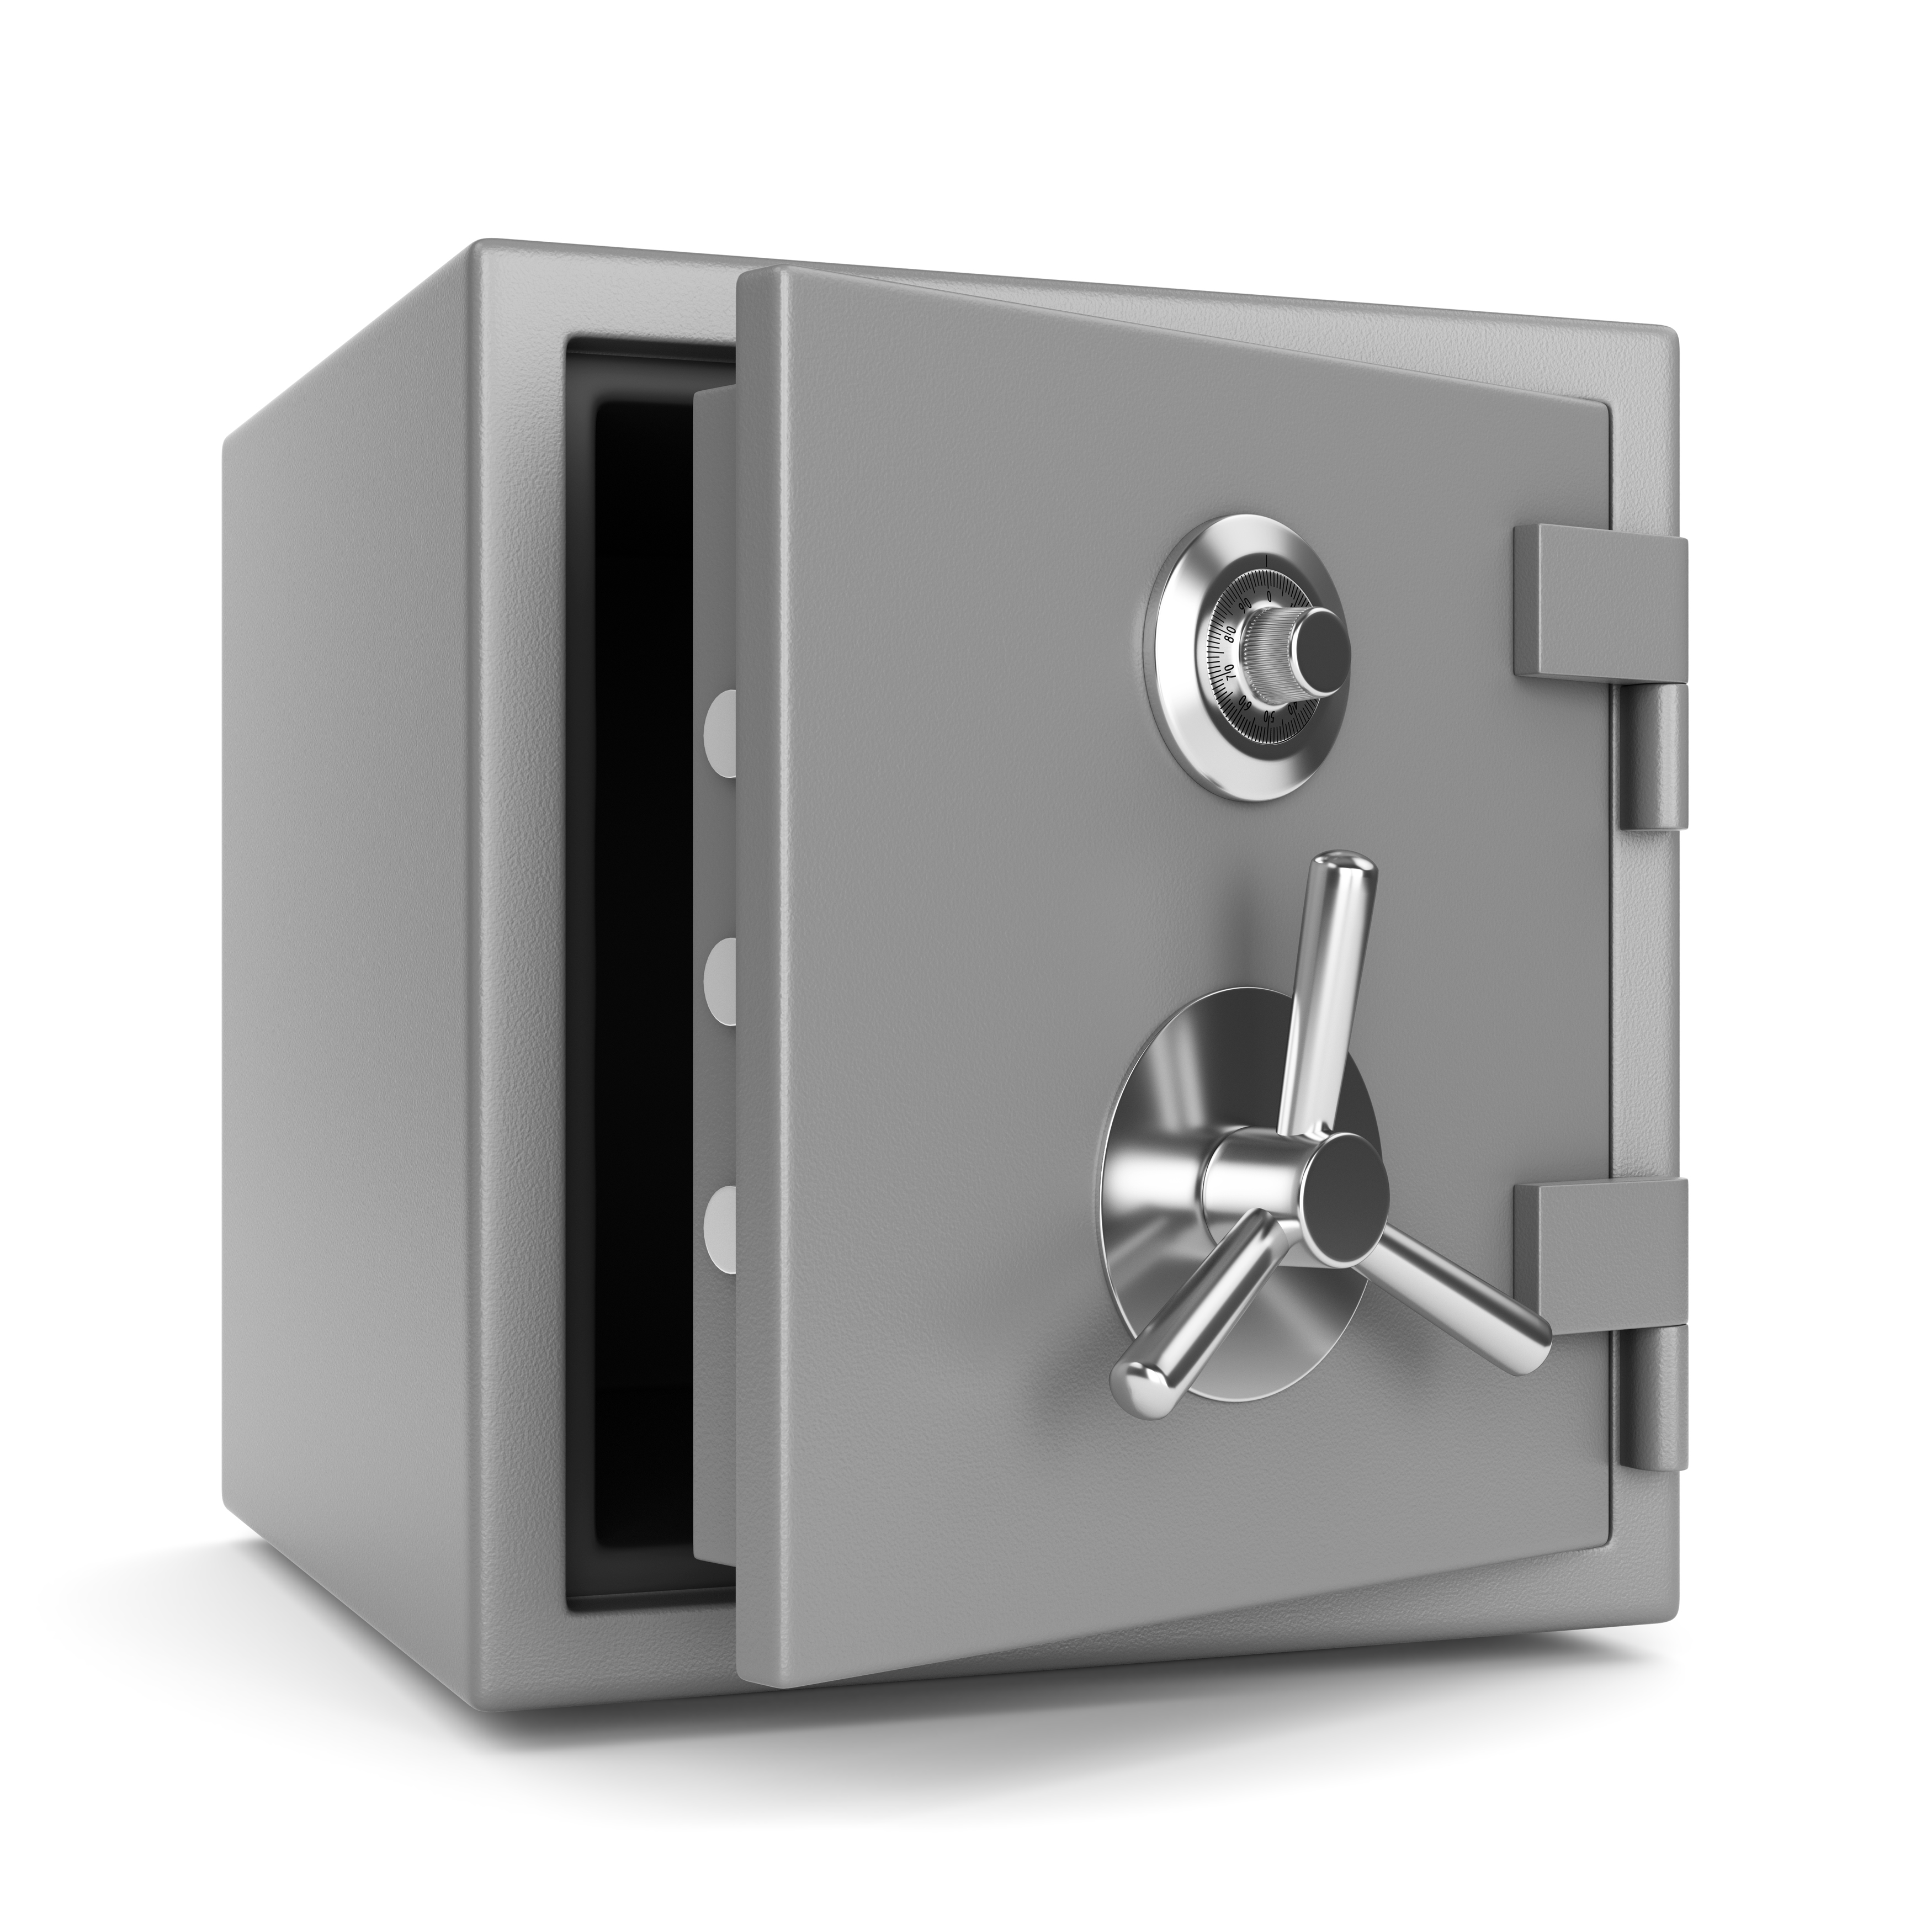 Open metal bank security safe with dial code lock isolated on white background. 3D illustration